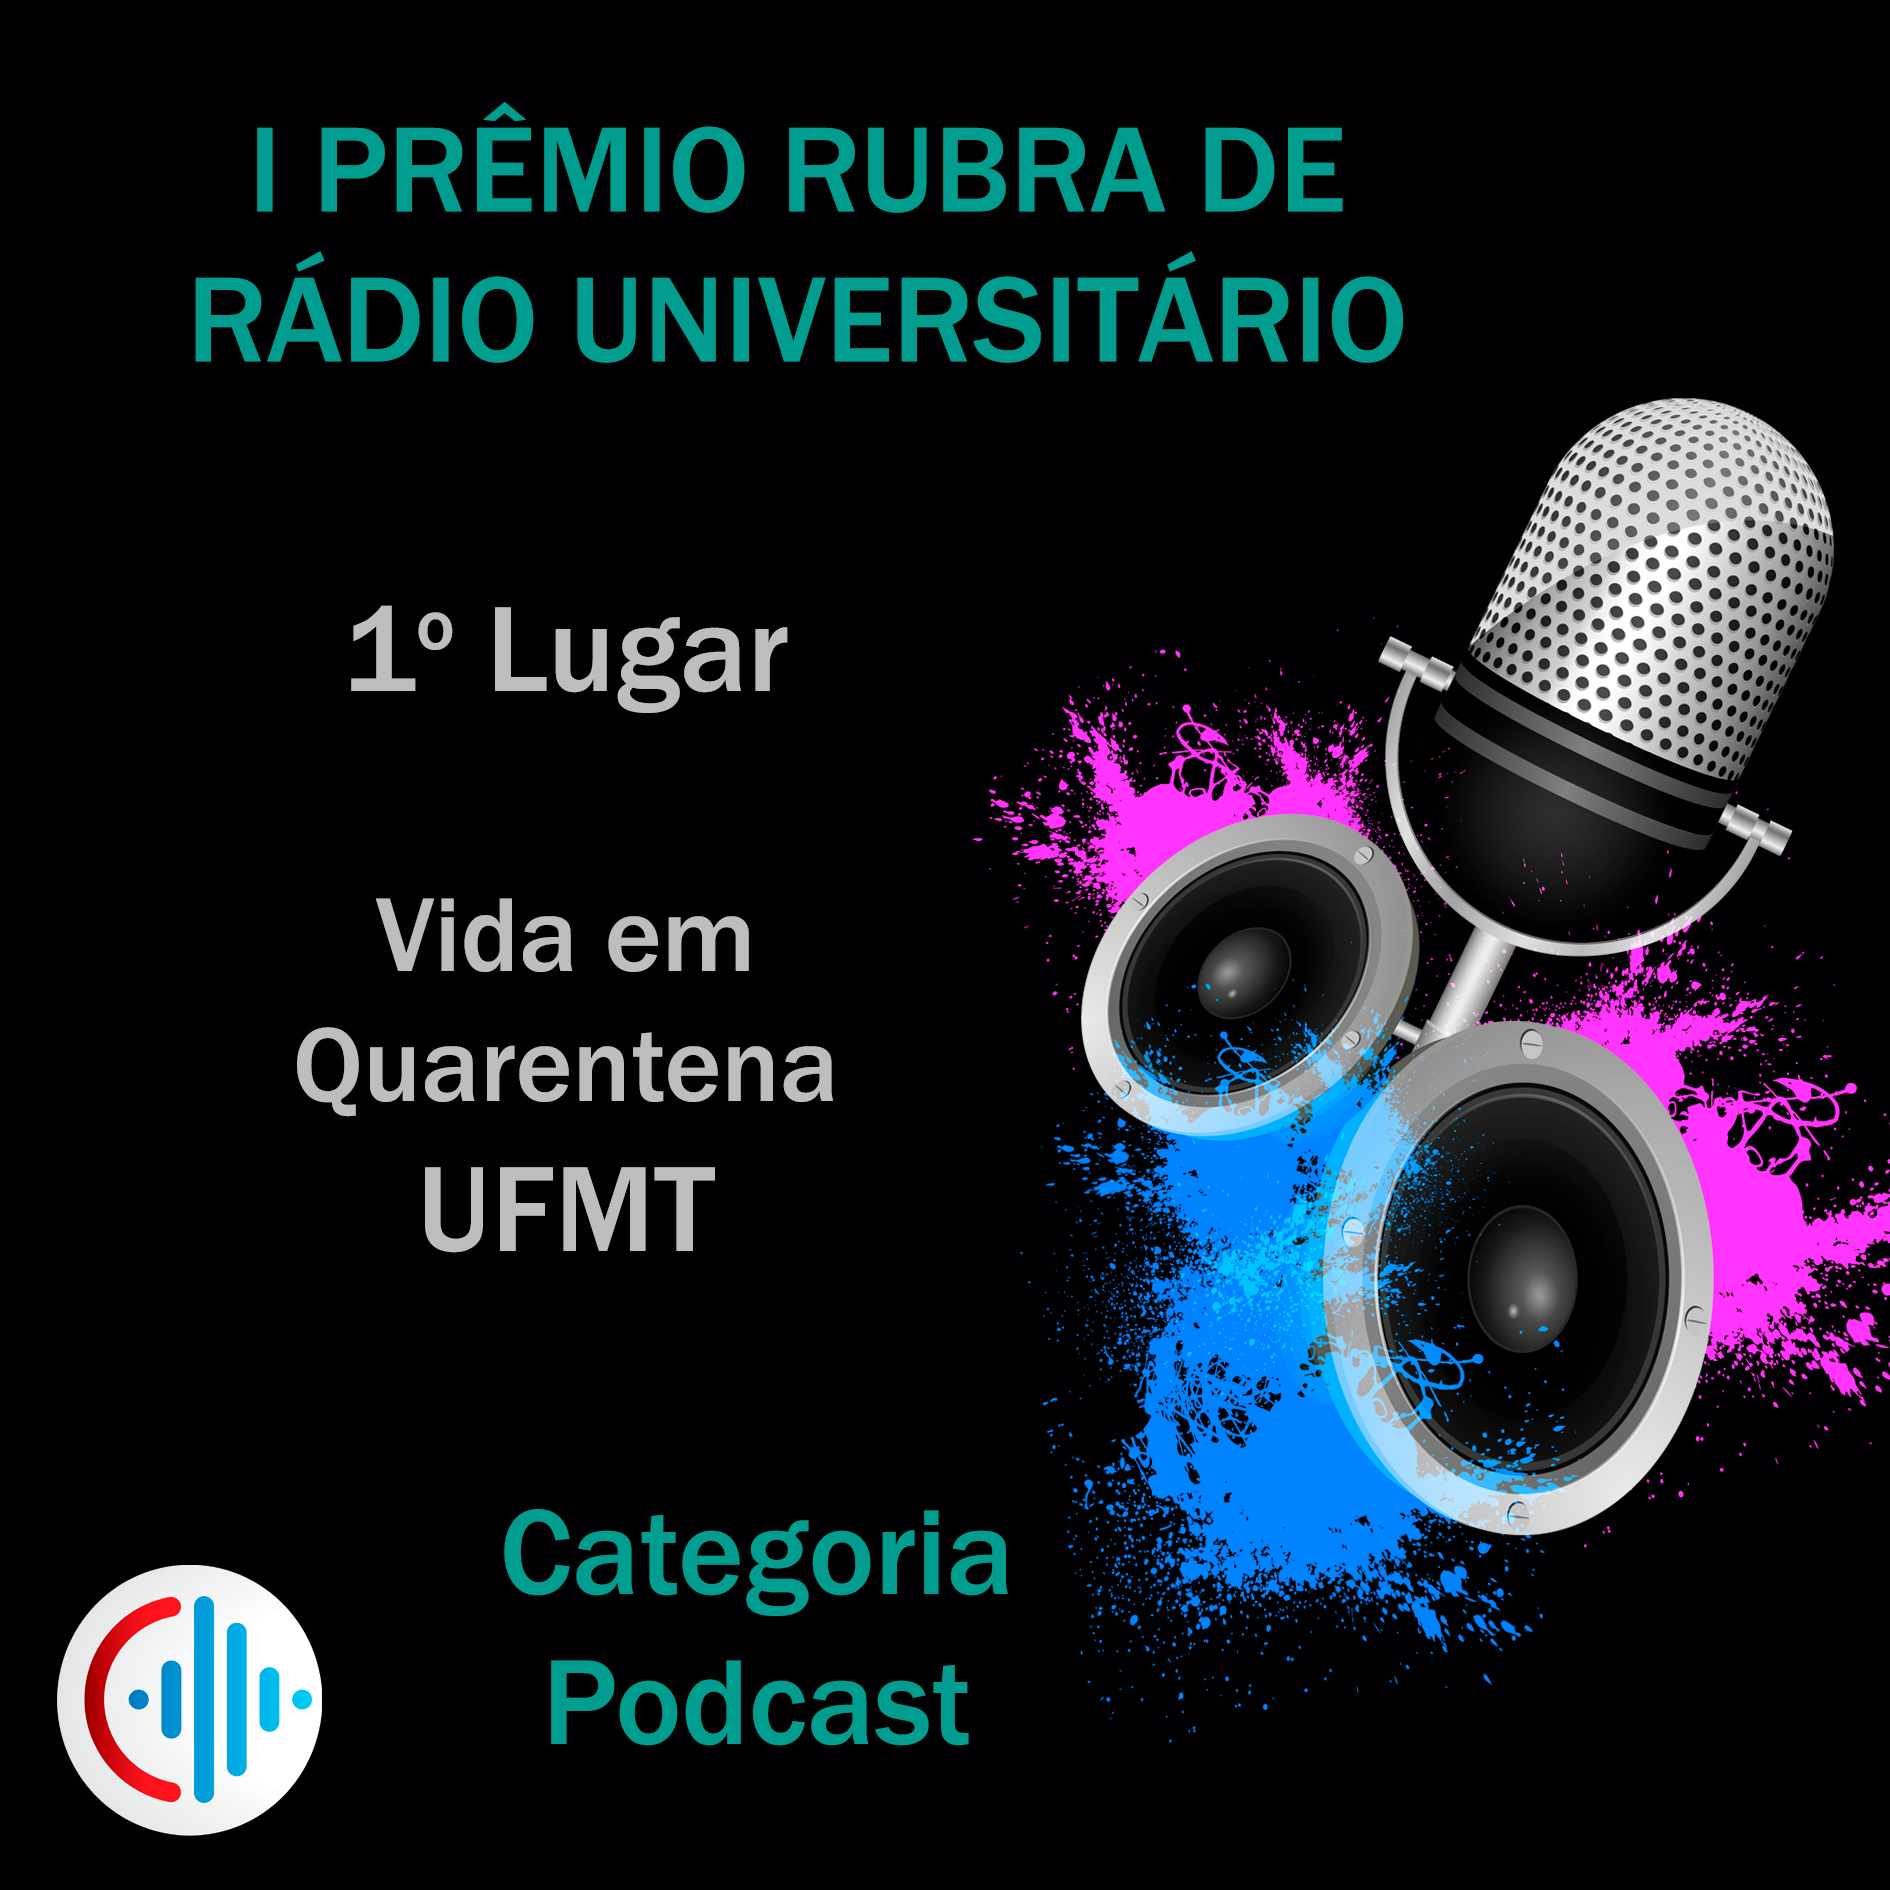 card_1Lugar_Podcast